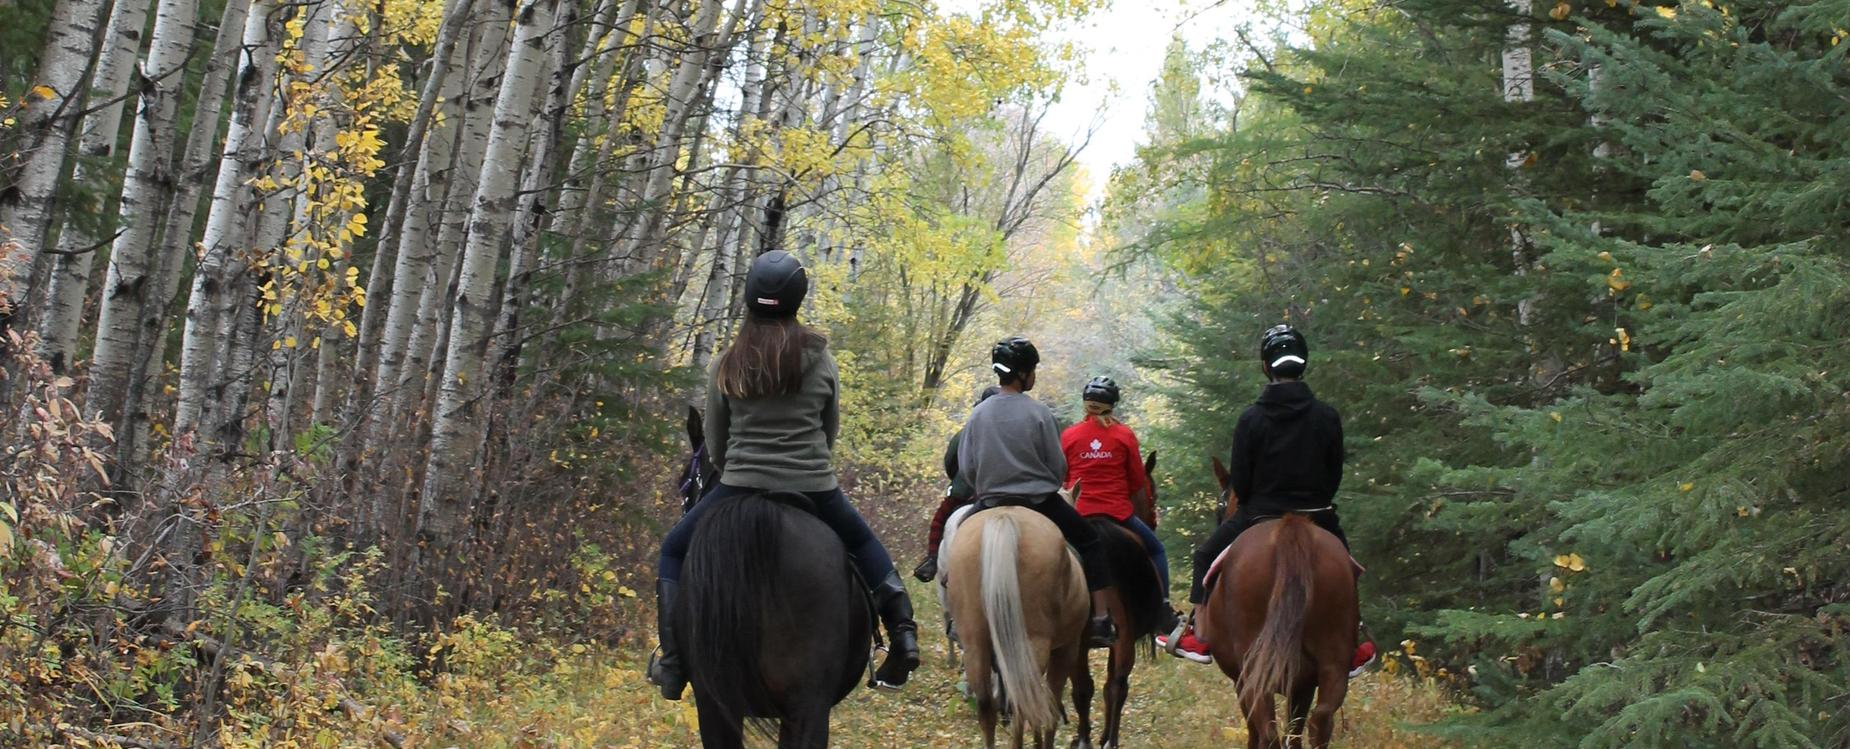 trail ride on horses